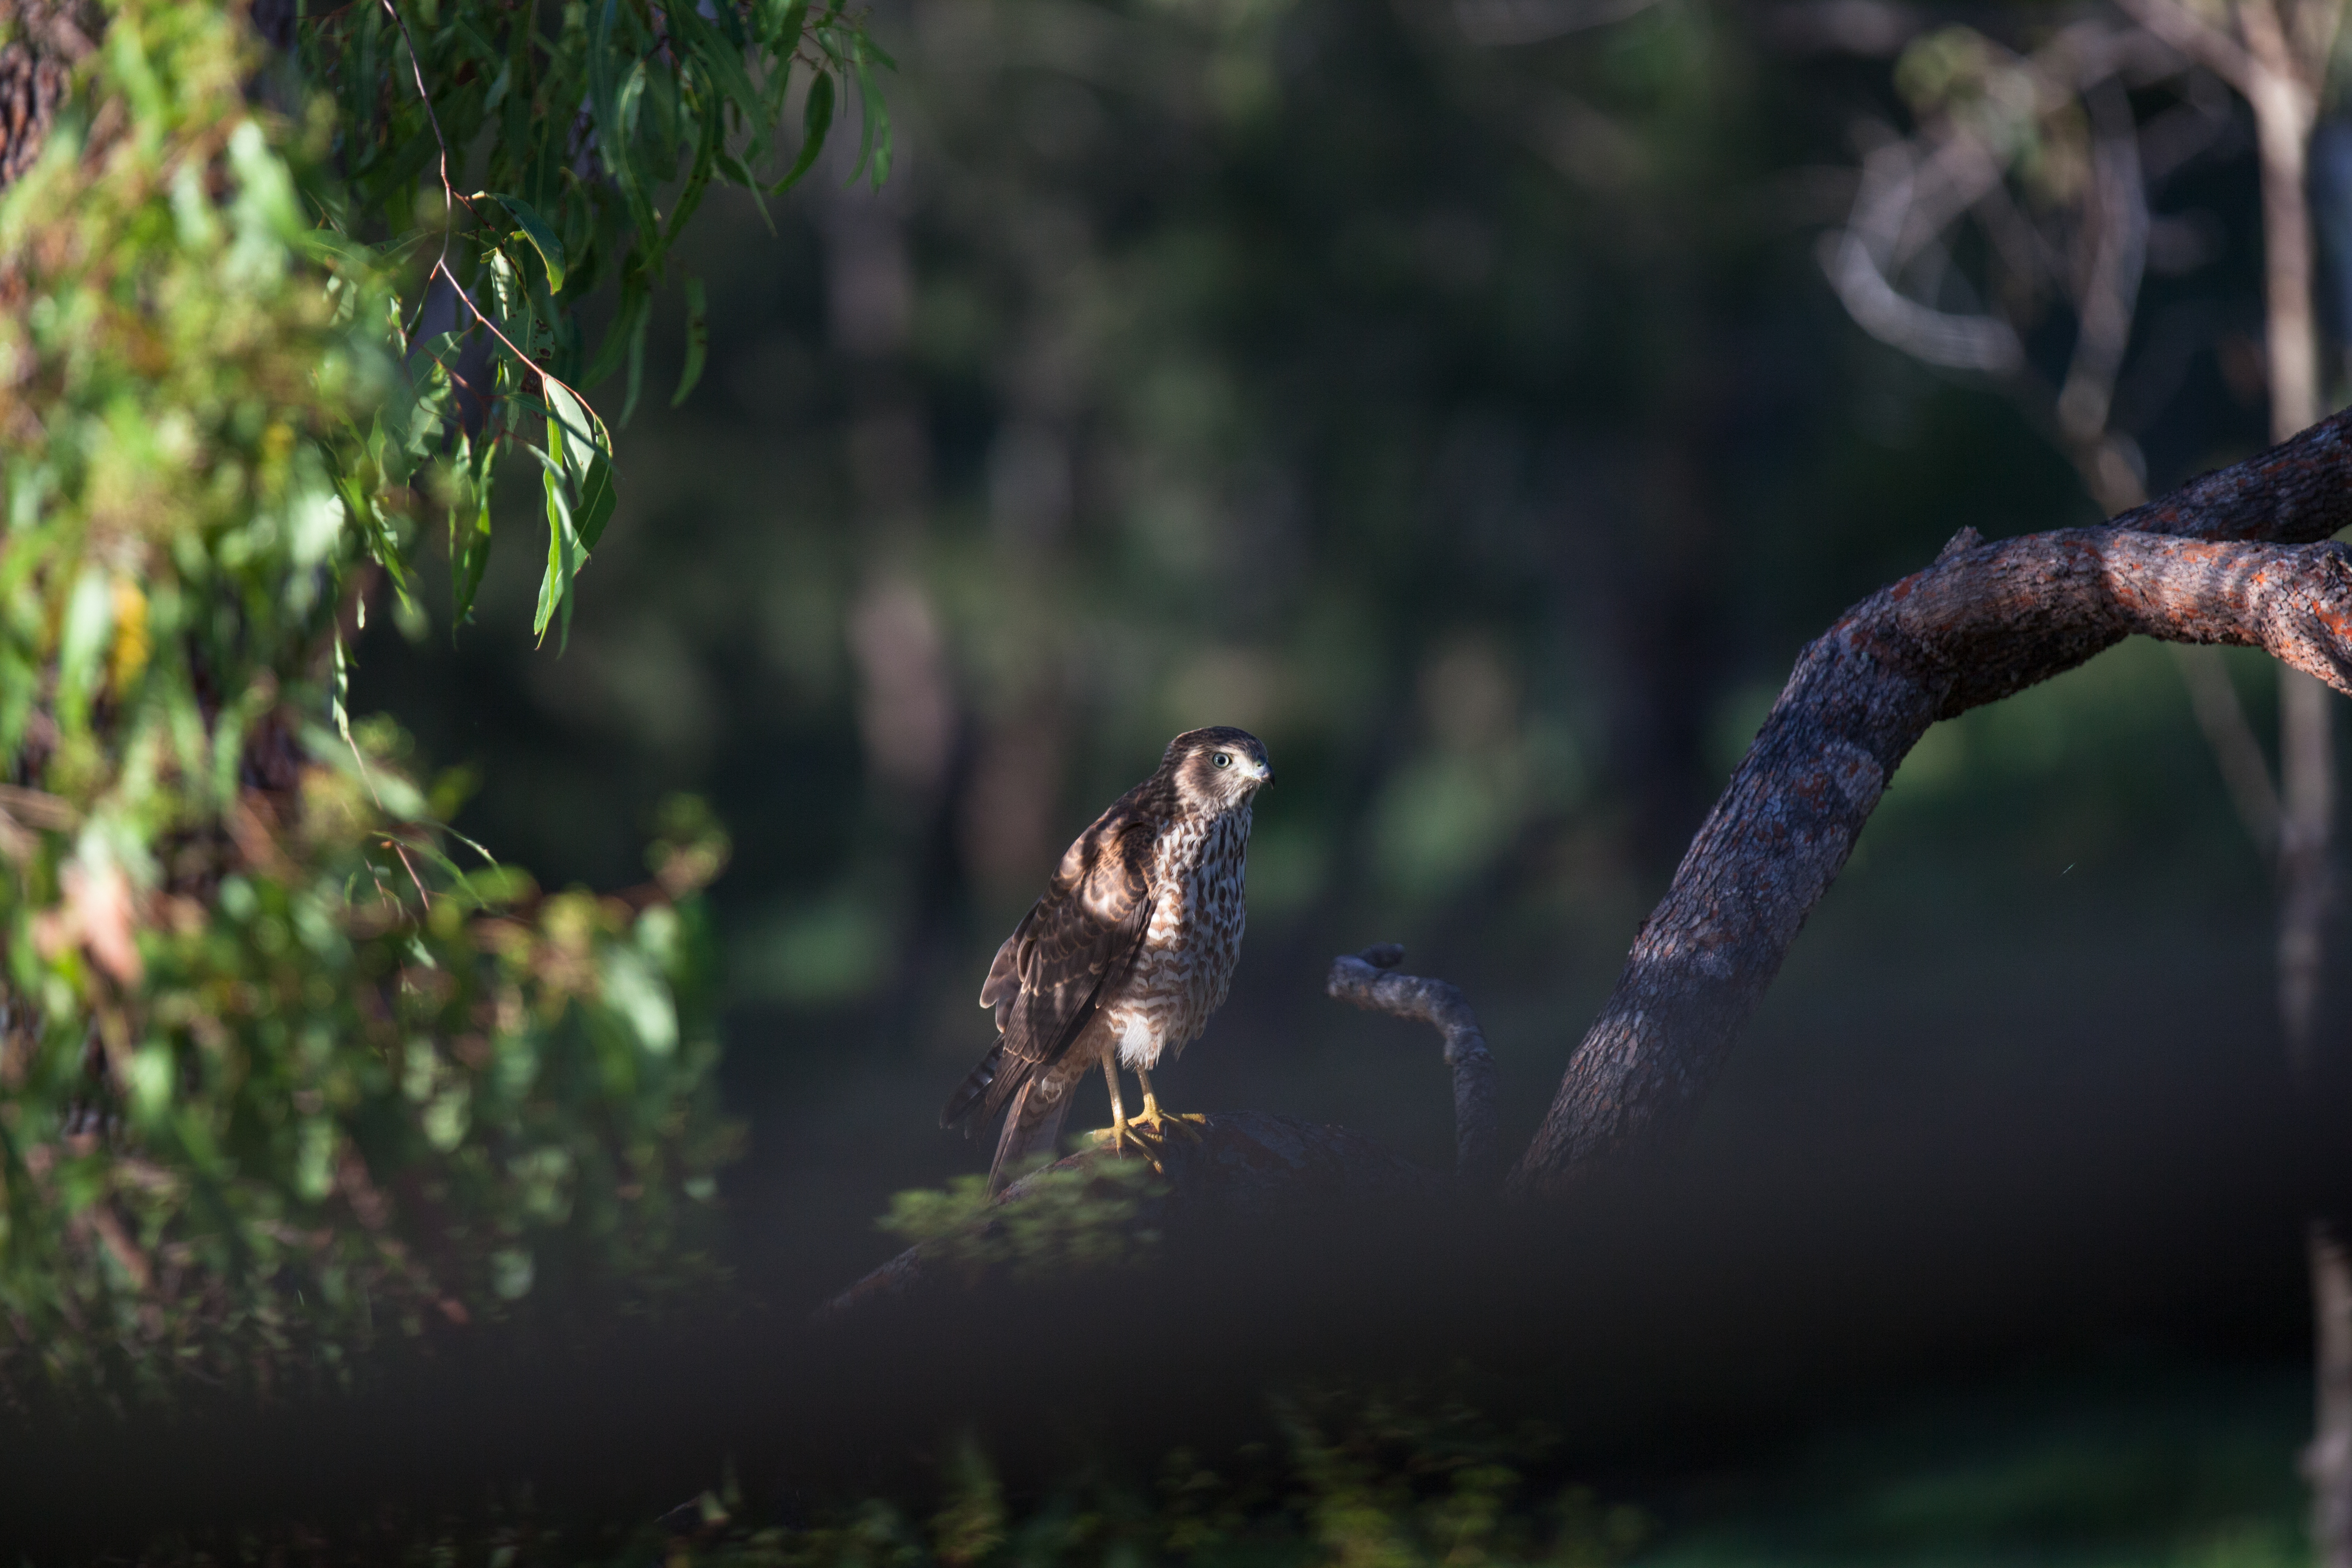 Brown Goshawk, birdwatching, The Long Weekend Retreat, Millstream, FNQ, Atherton Tablelands